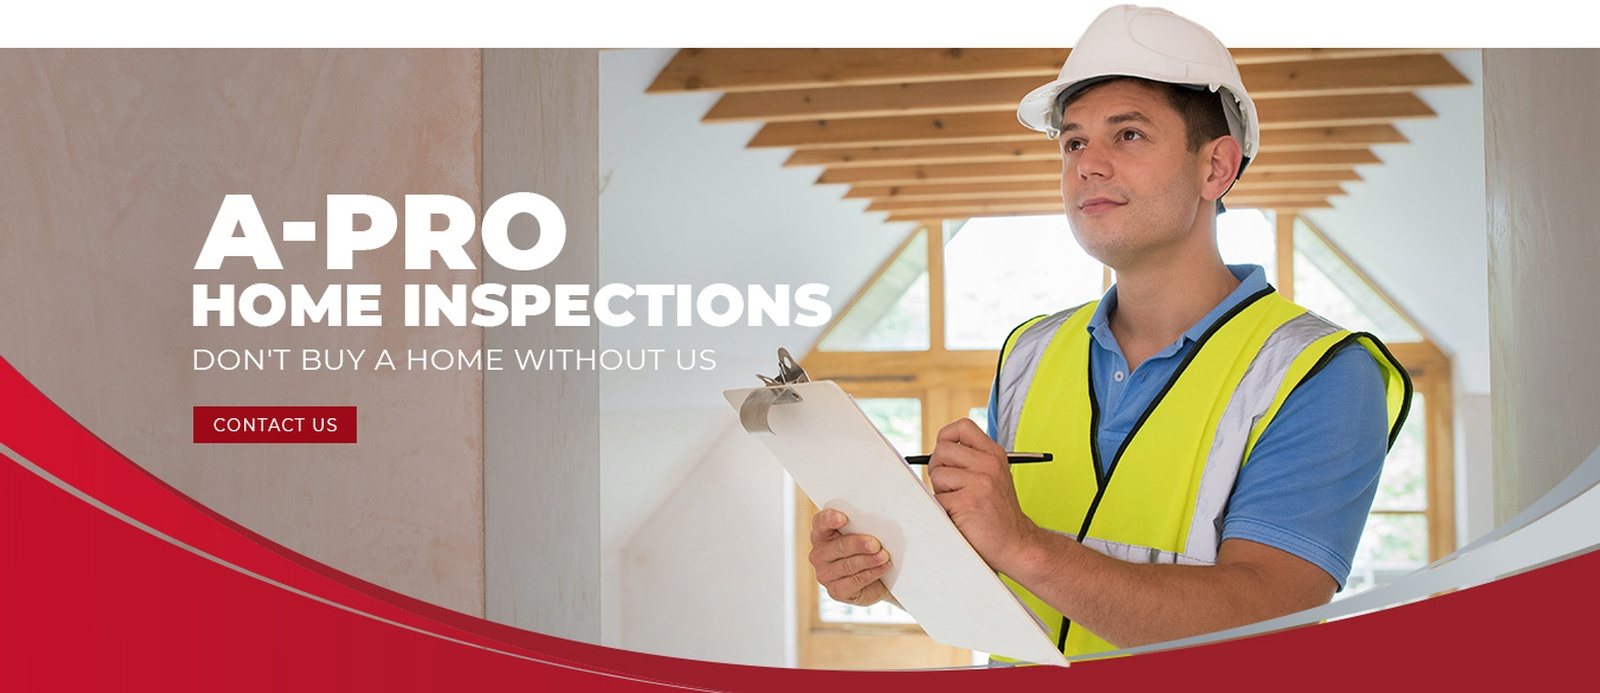 Home Inspection in Colorado Springs